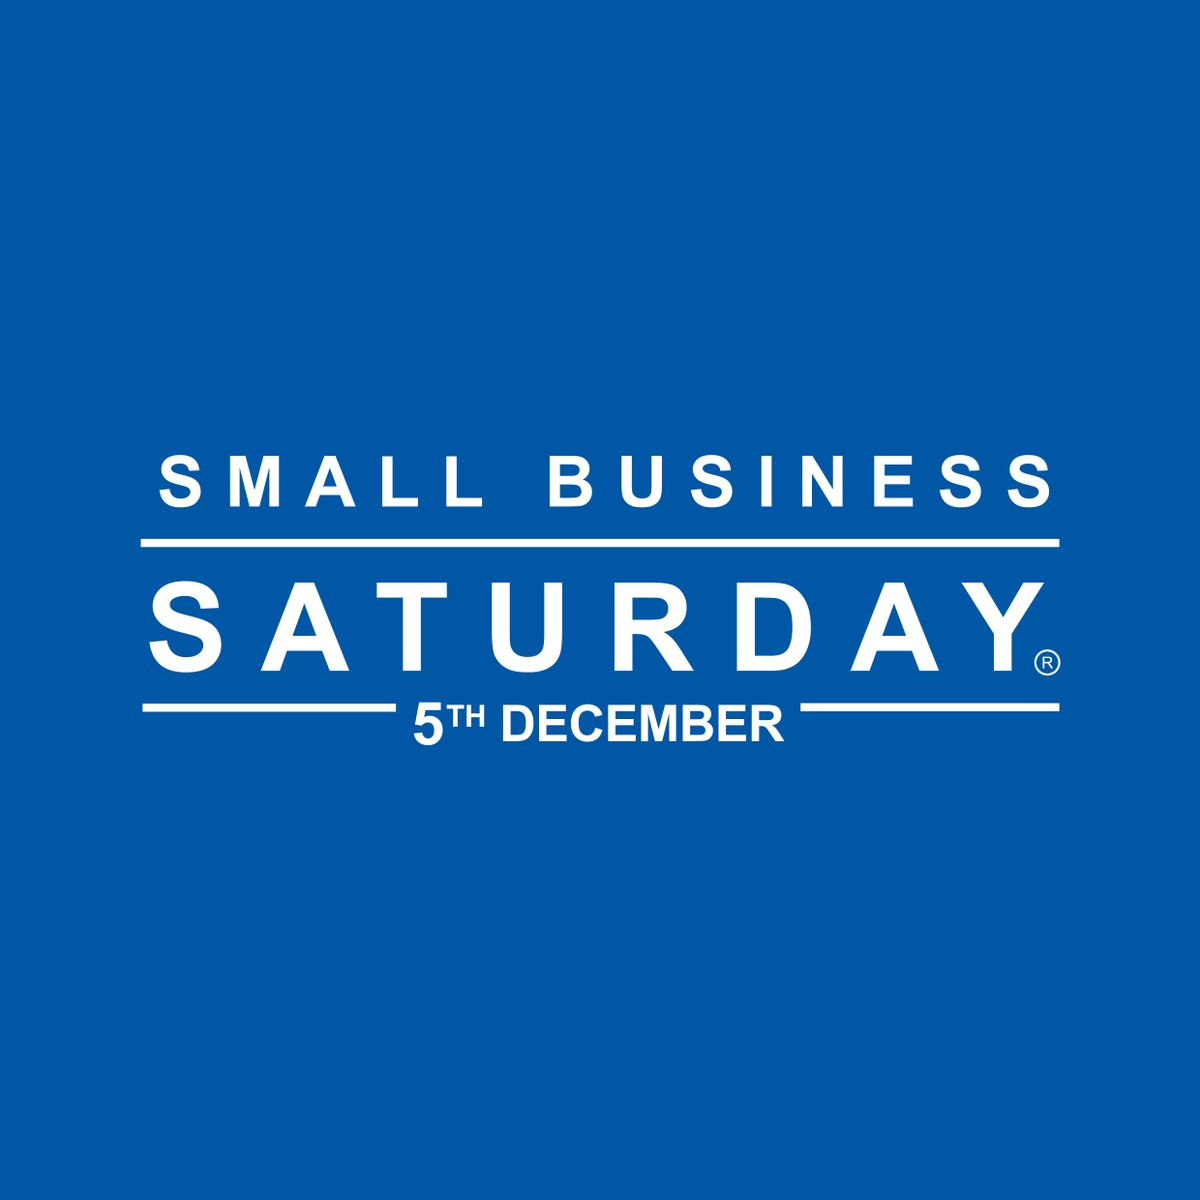 Small Business Saturday is back for 2020 on the 5th December. Join us in supporting the small biz who have done so much to support us this year. How can you help small biz survive and thrive? #SmallBizSatUk